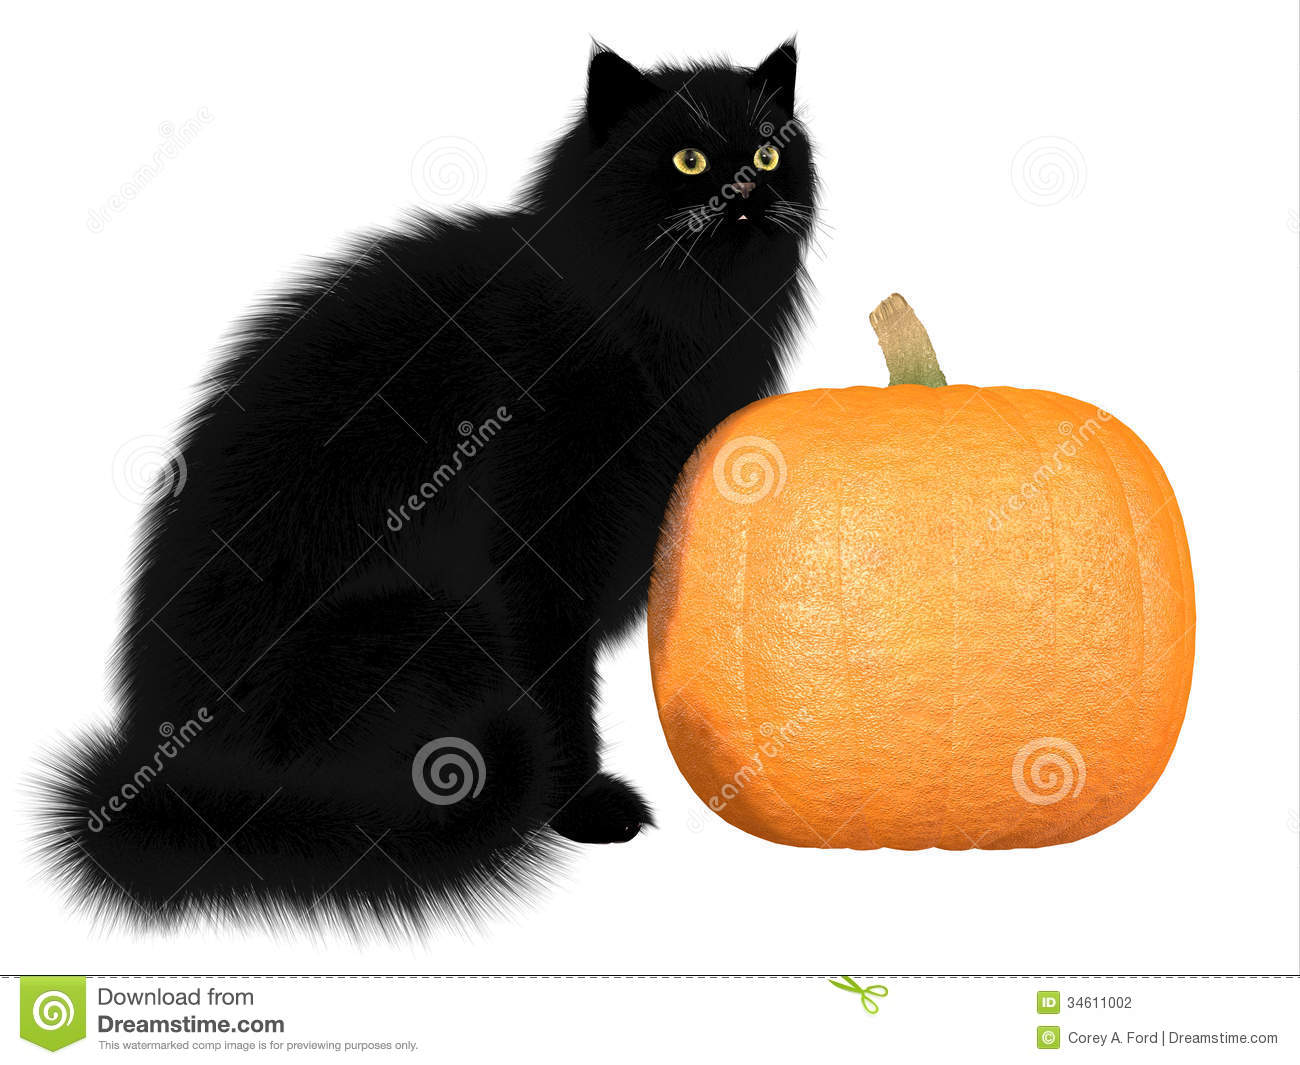 black cat symbolism essay The black cat and the cask of amontillado are very similar in some ways both include a lot of symbolism in the black cat the cask of amontillado narrative essay.